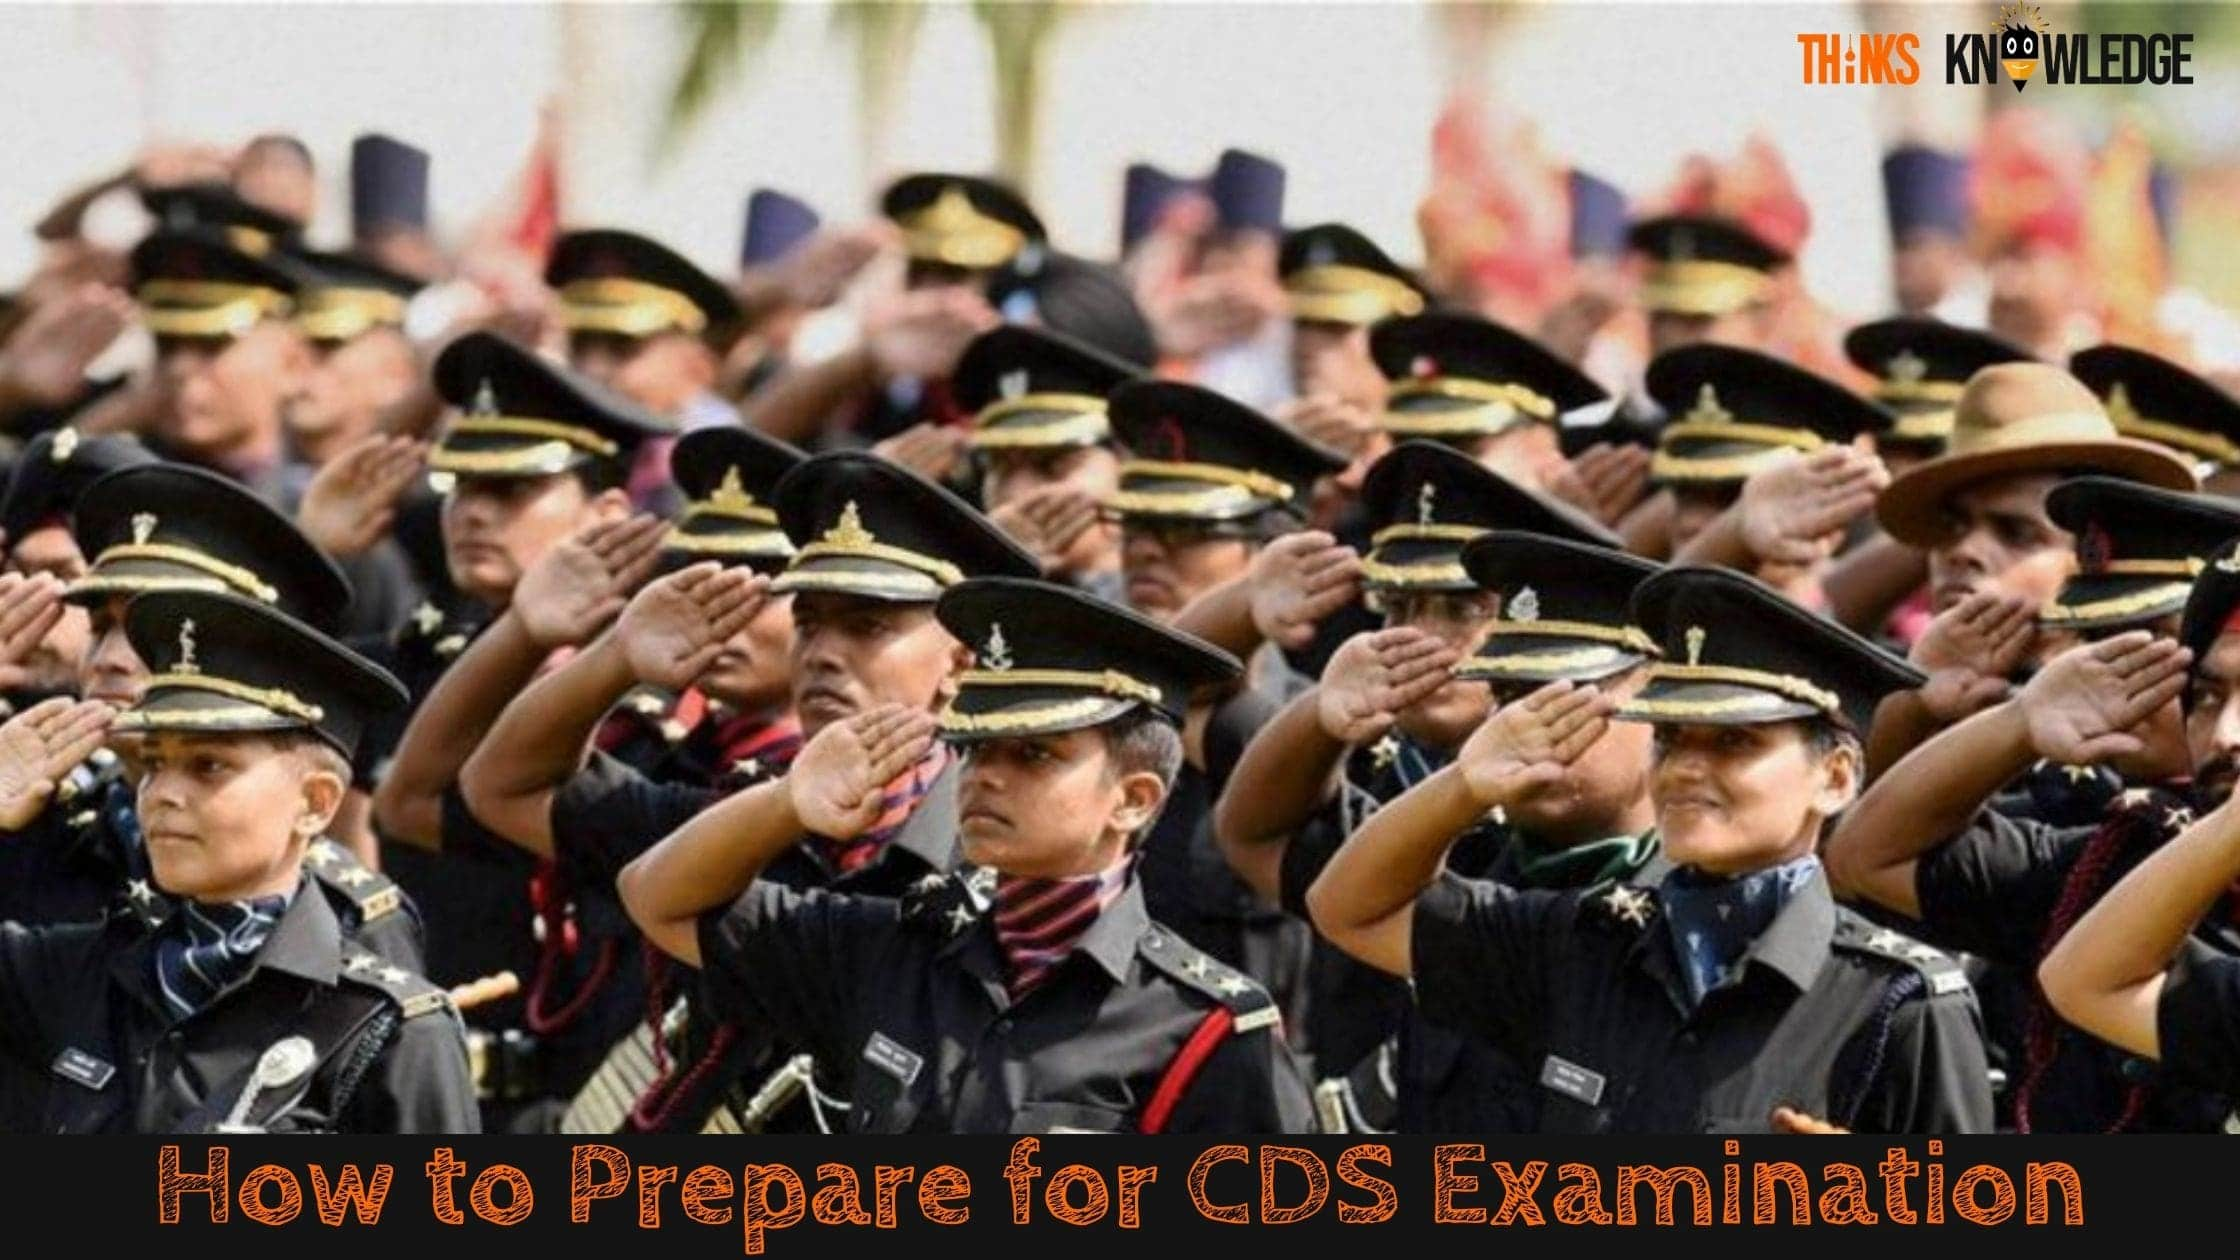 How to Prepare for CDS